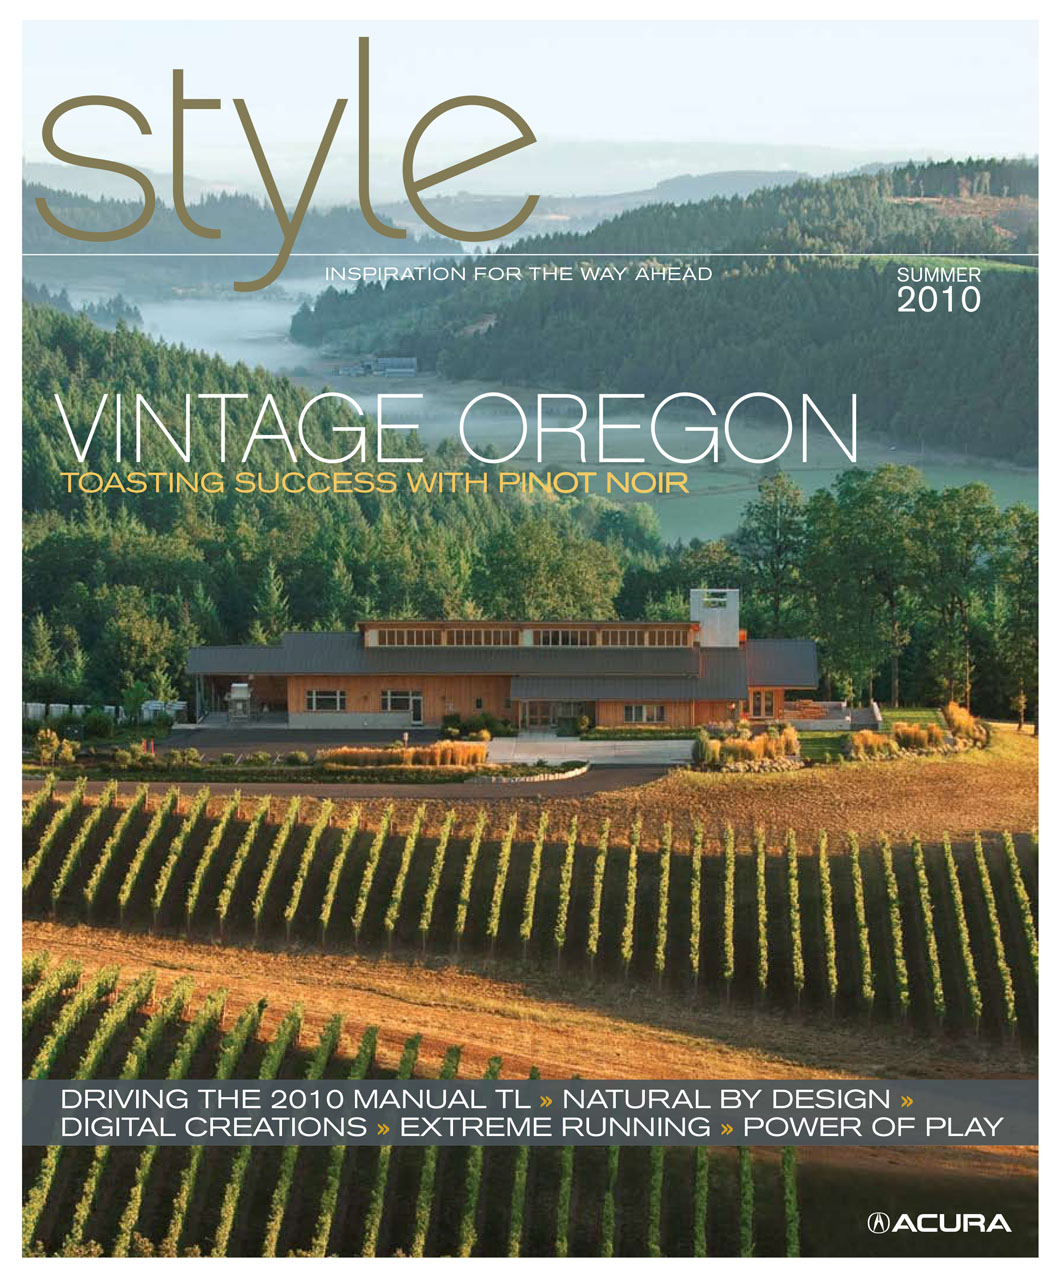 Vintage Oregon: Taming the Grape